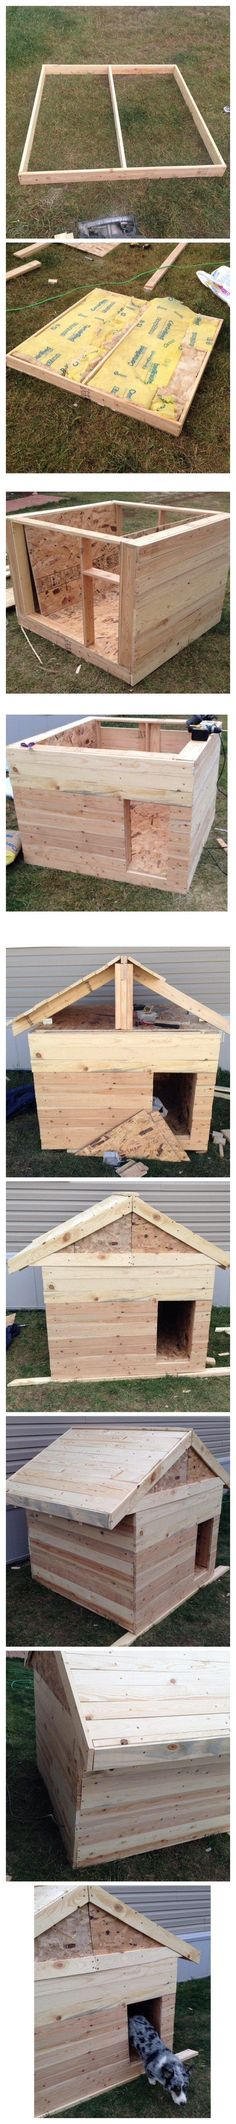 50 Best Dog house plans images